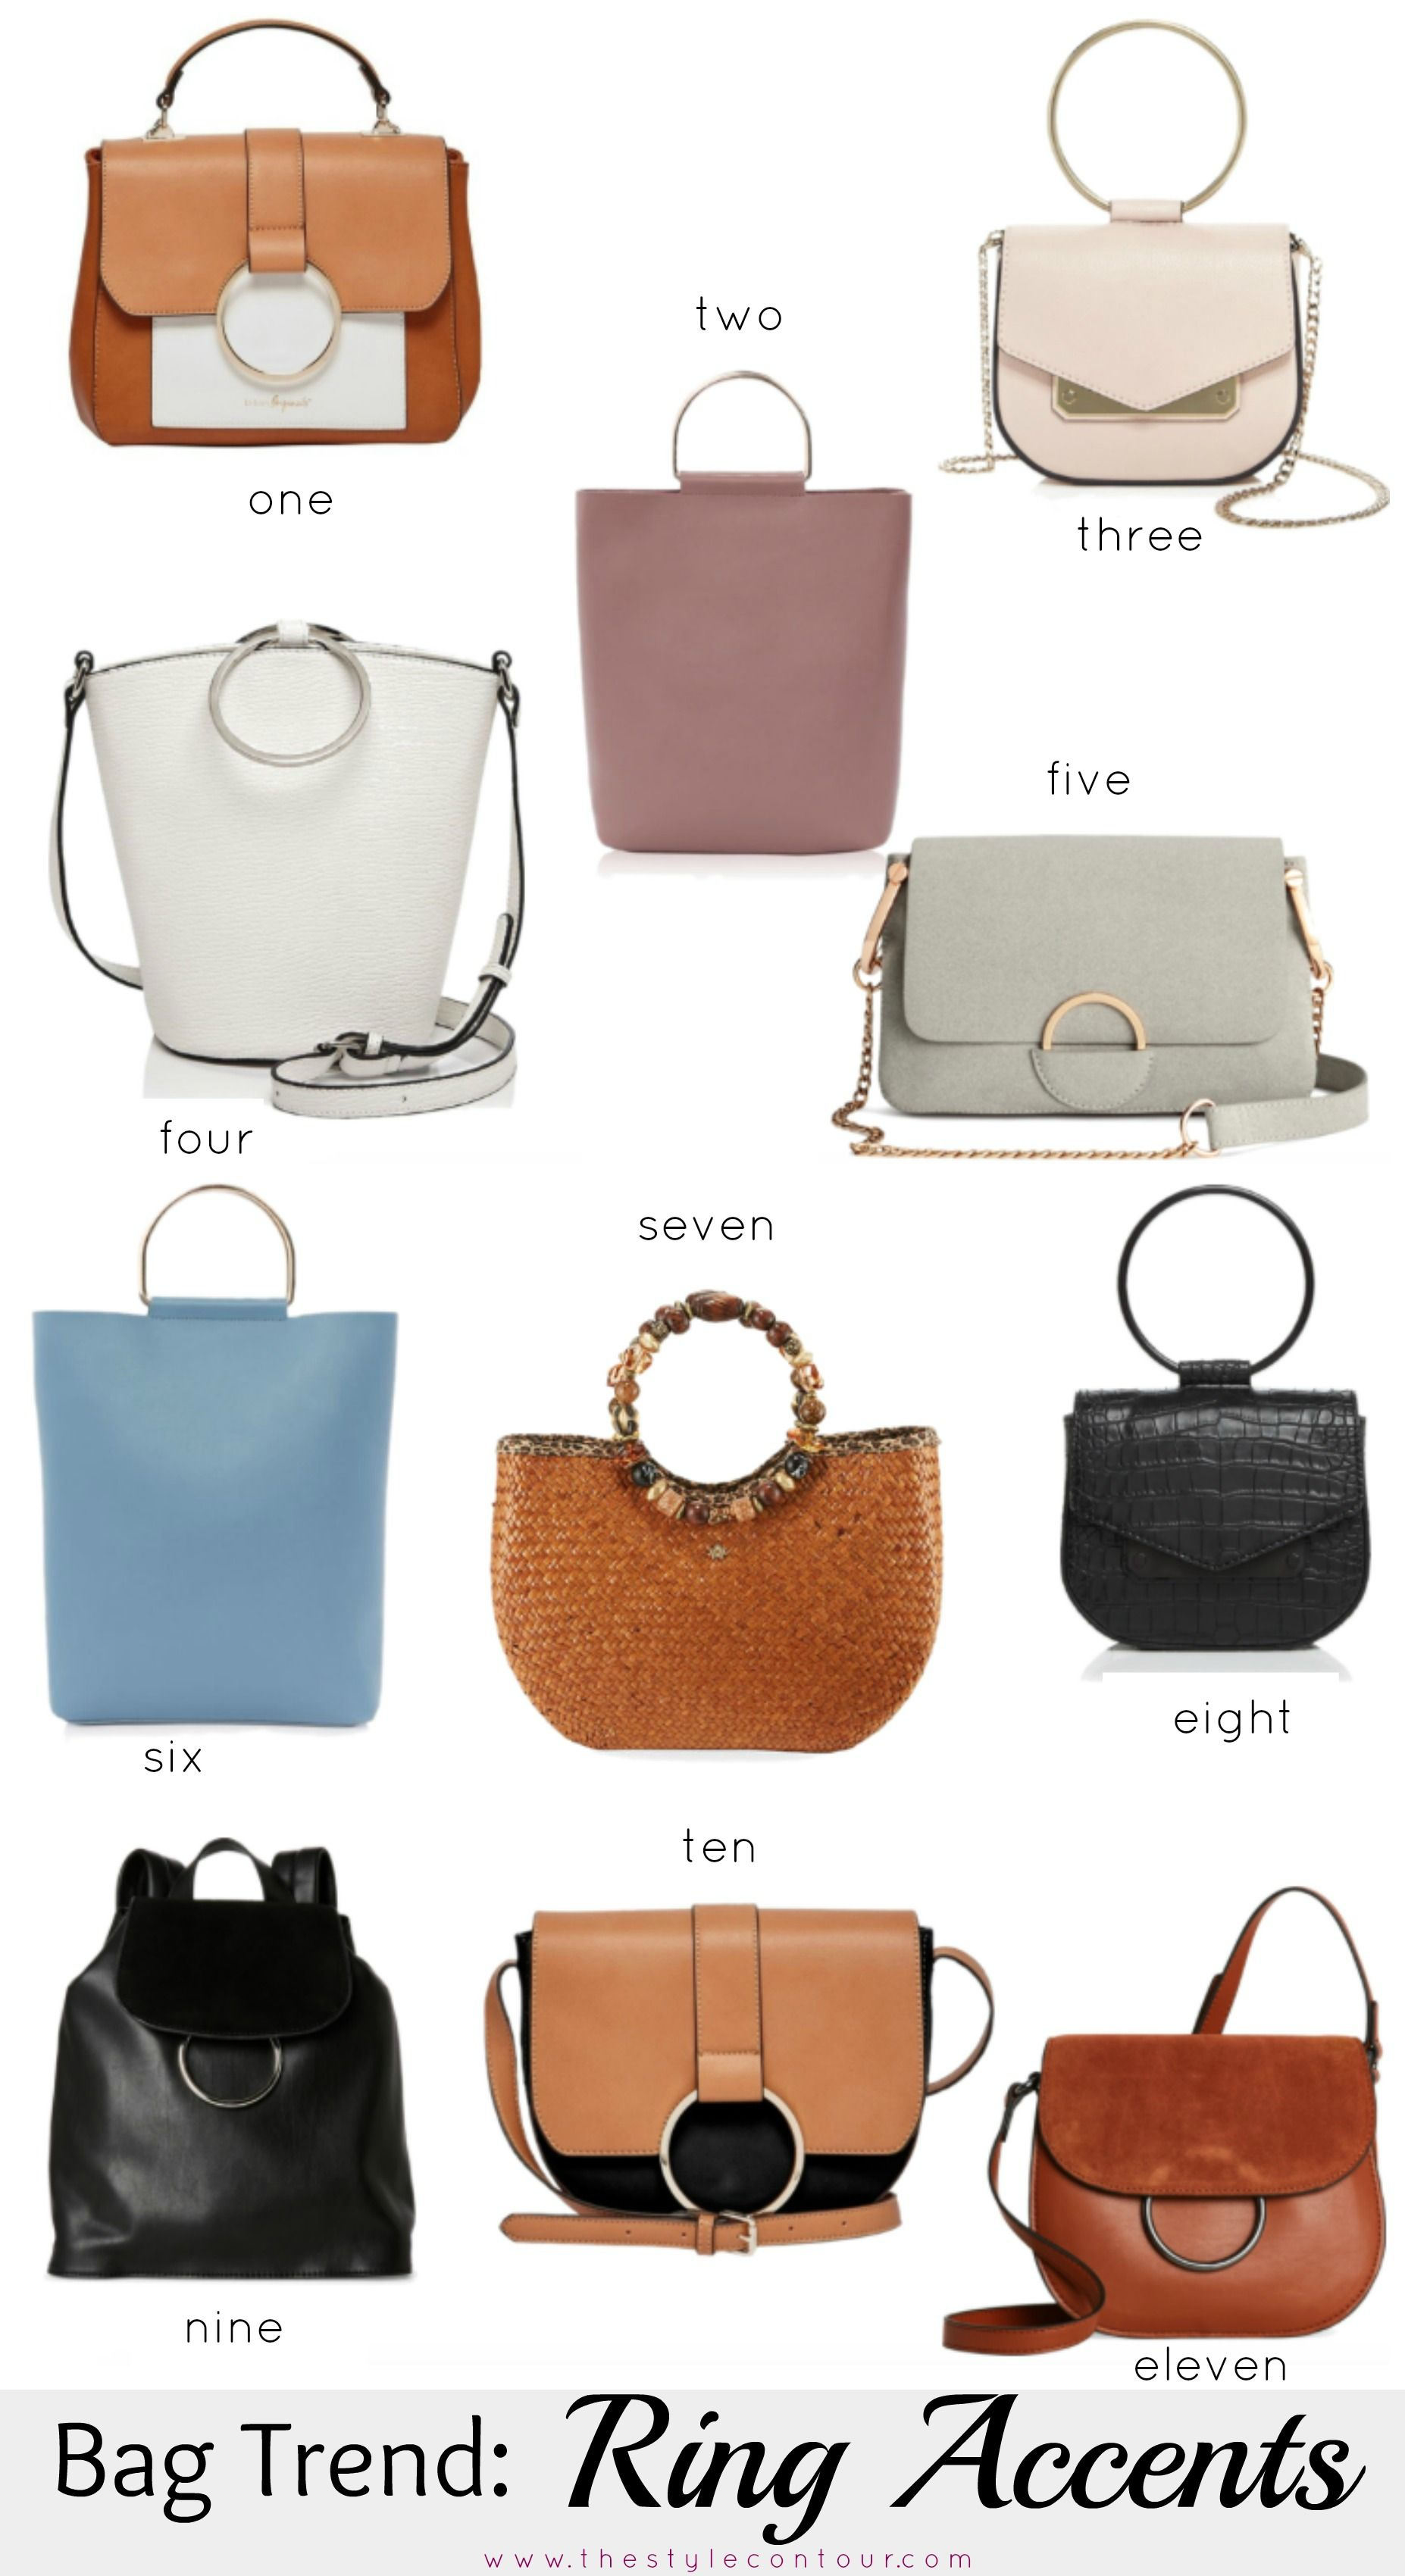 b12c38c0a Blog - Bag Trend: Ring Accents + 11 Picks Under $100 | Look What I ...